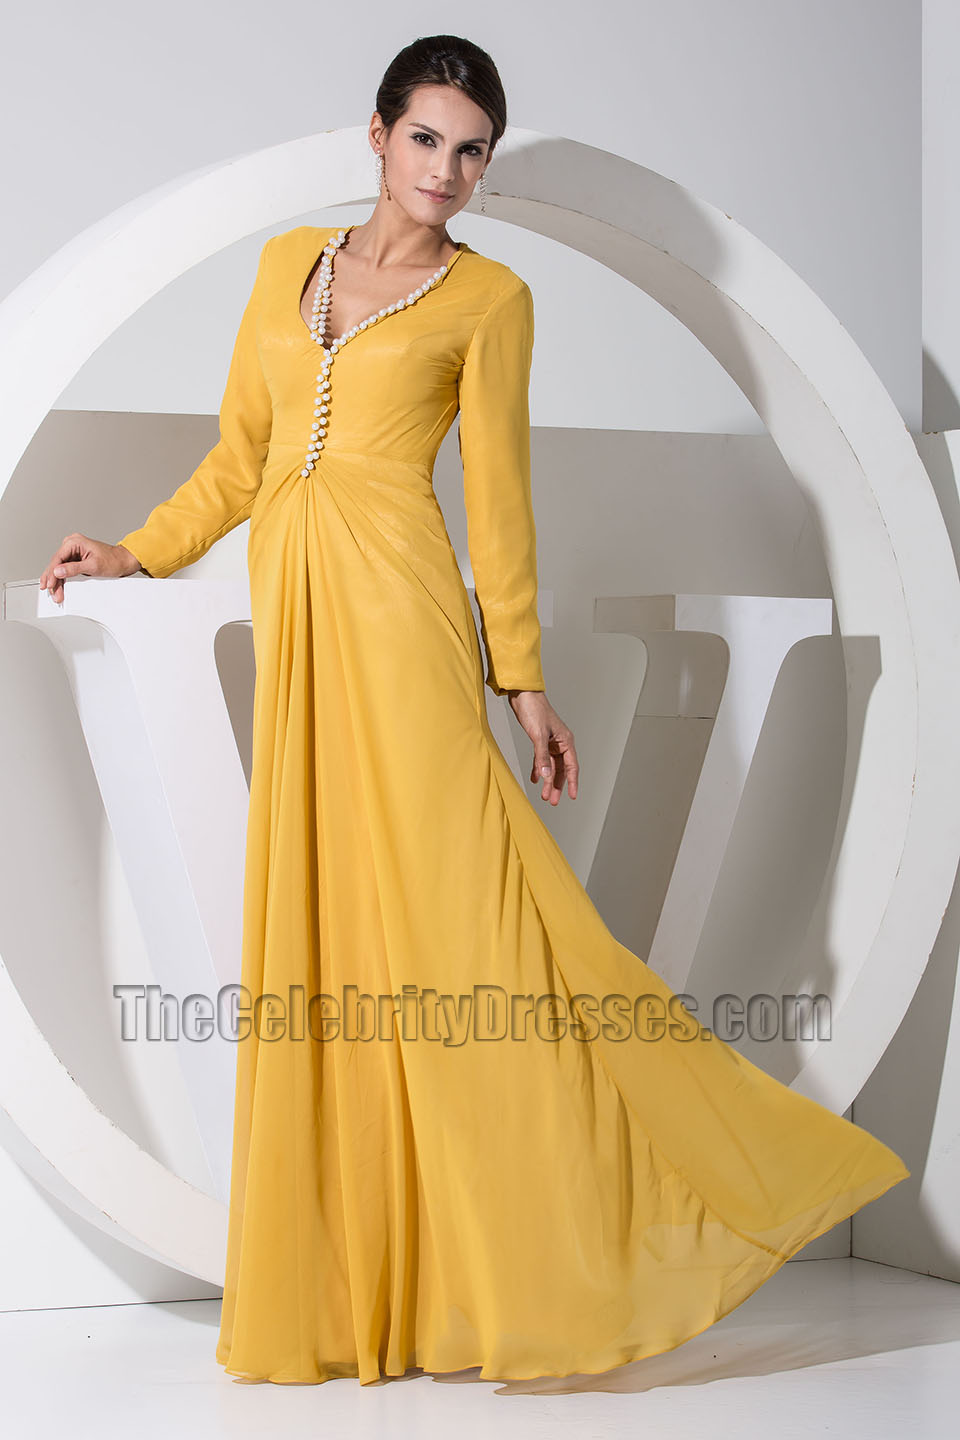 Gorgeous Yellow Long Sleeve Prom Dress Formal Evening Dresses ...